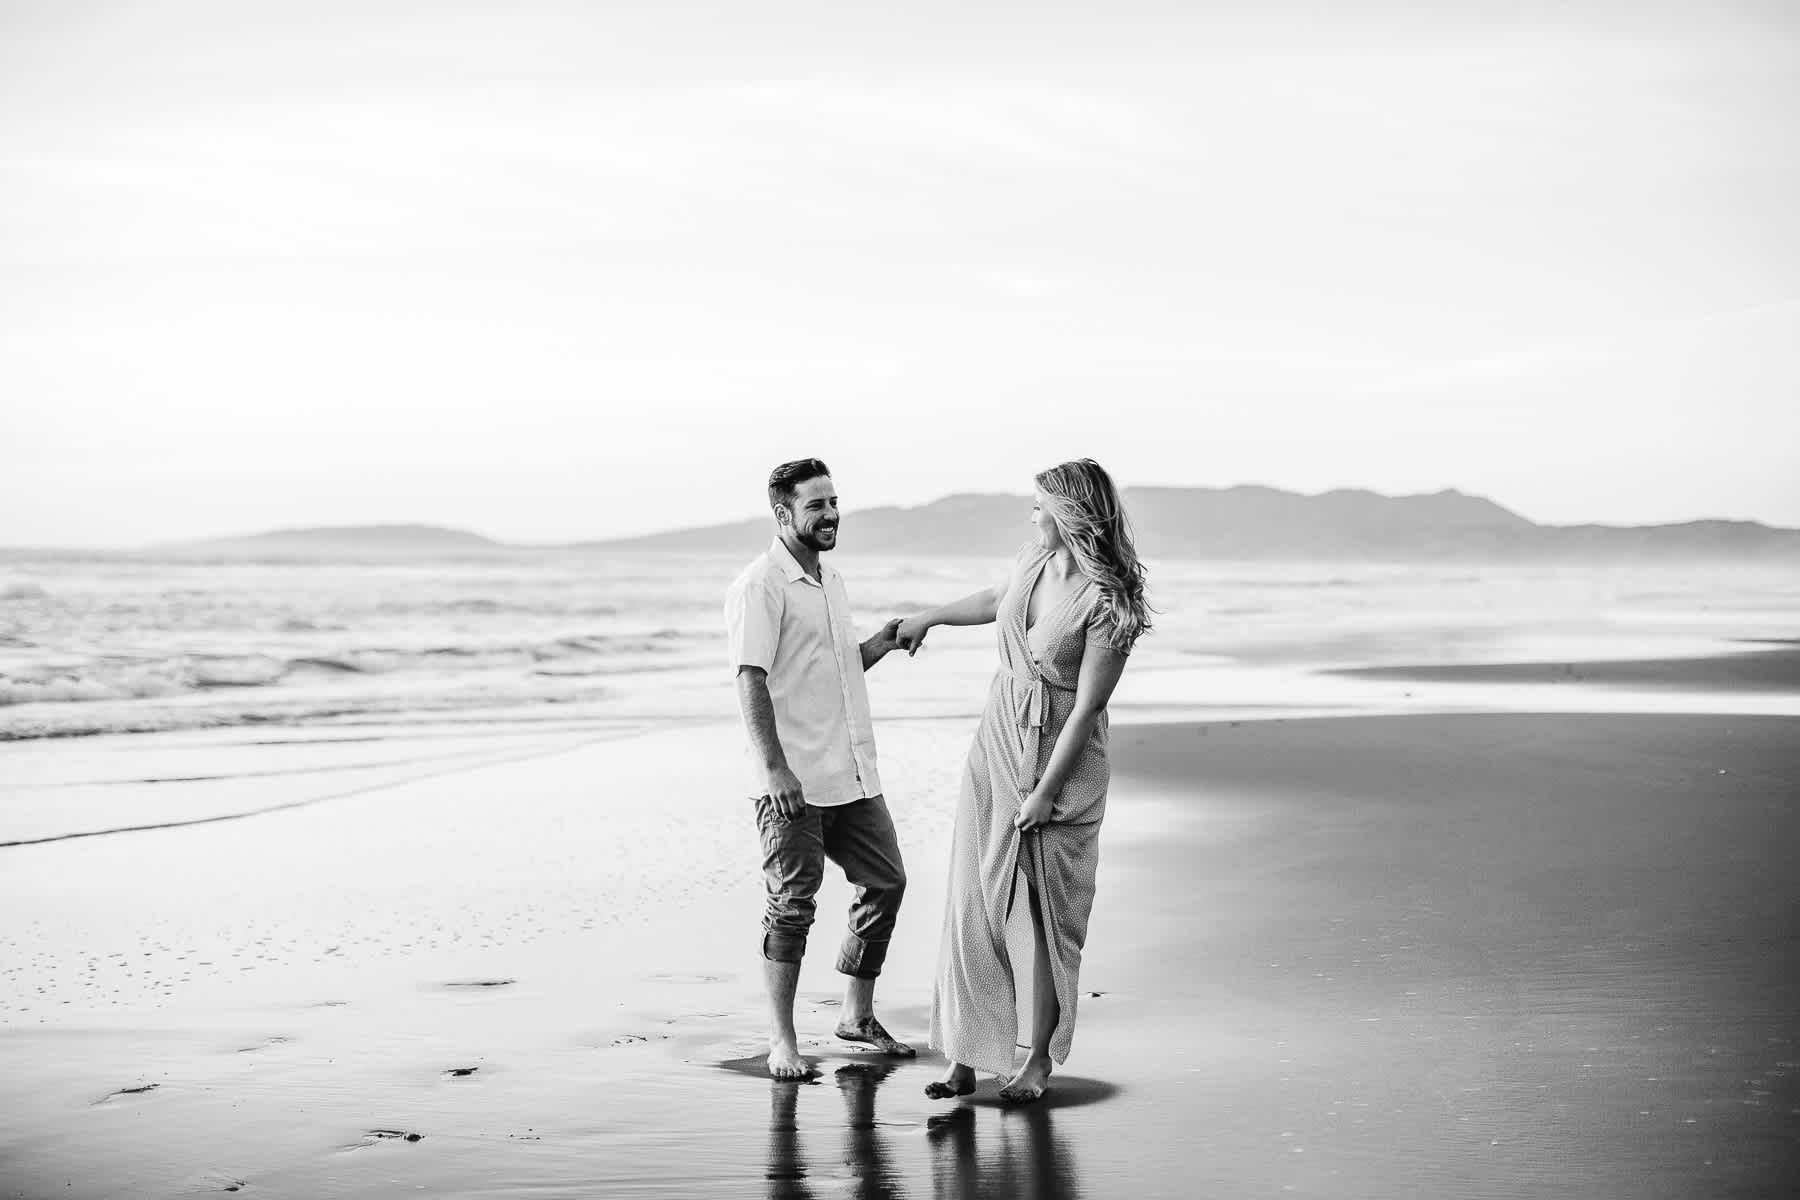 fort-funston-engagement-session-sunset-fun-beach-session-36